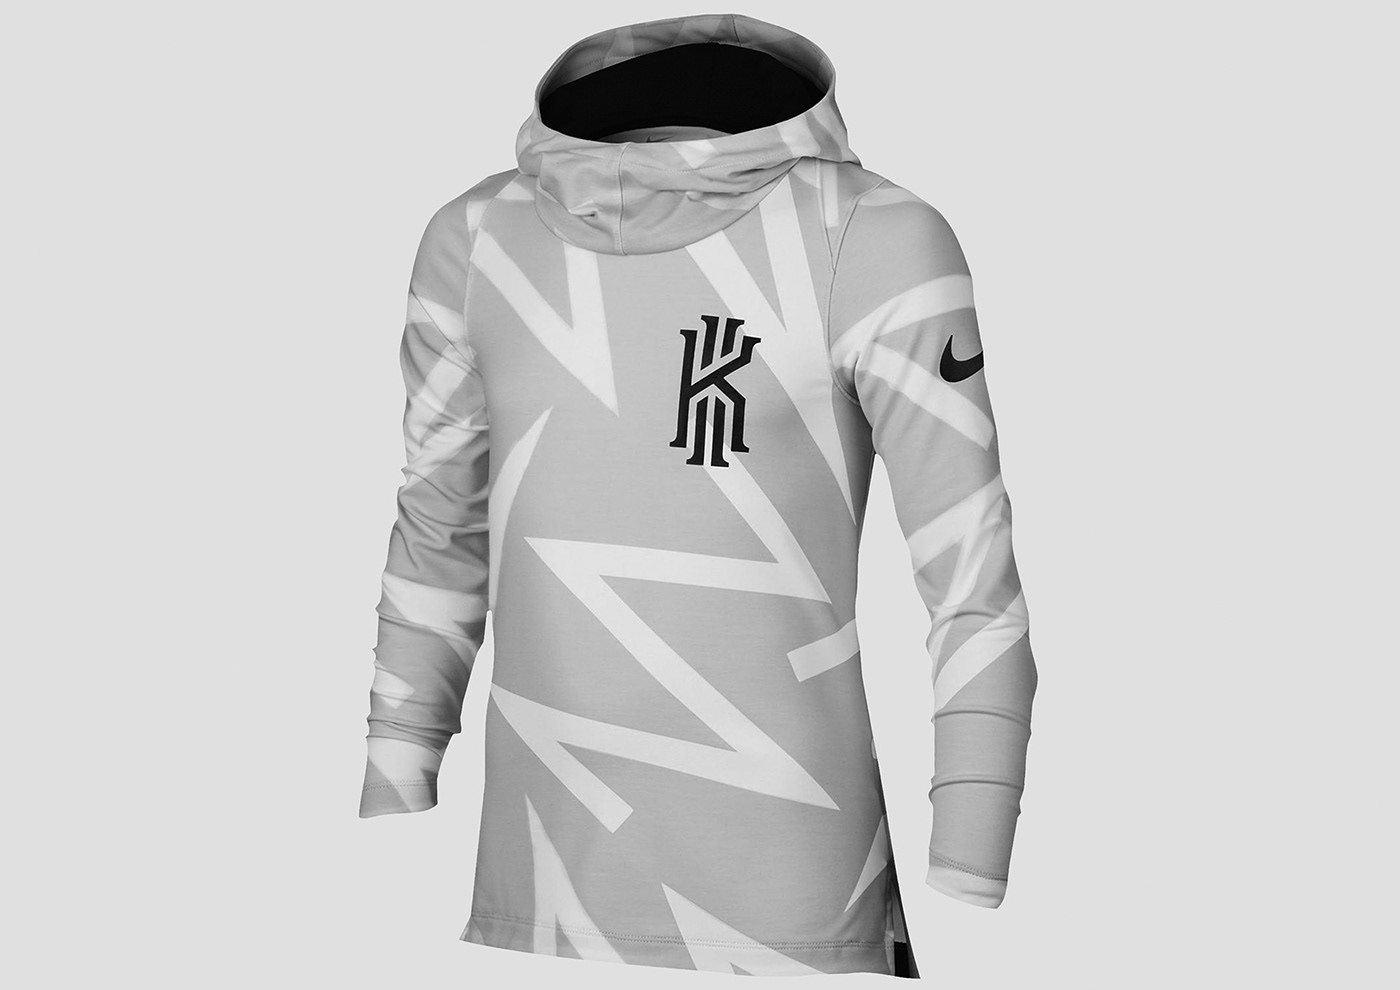 Nike - Kyrie Irving Hoodie and Shorts on Behance